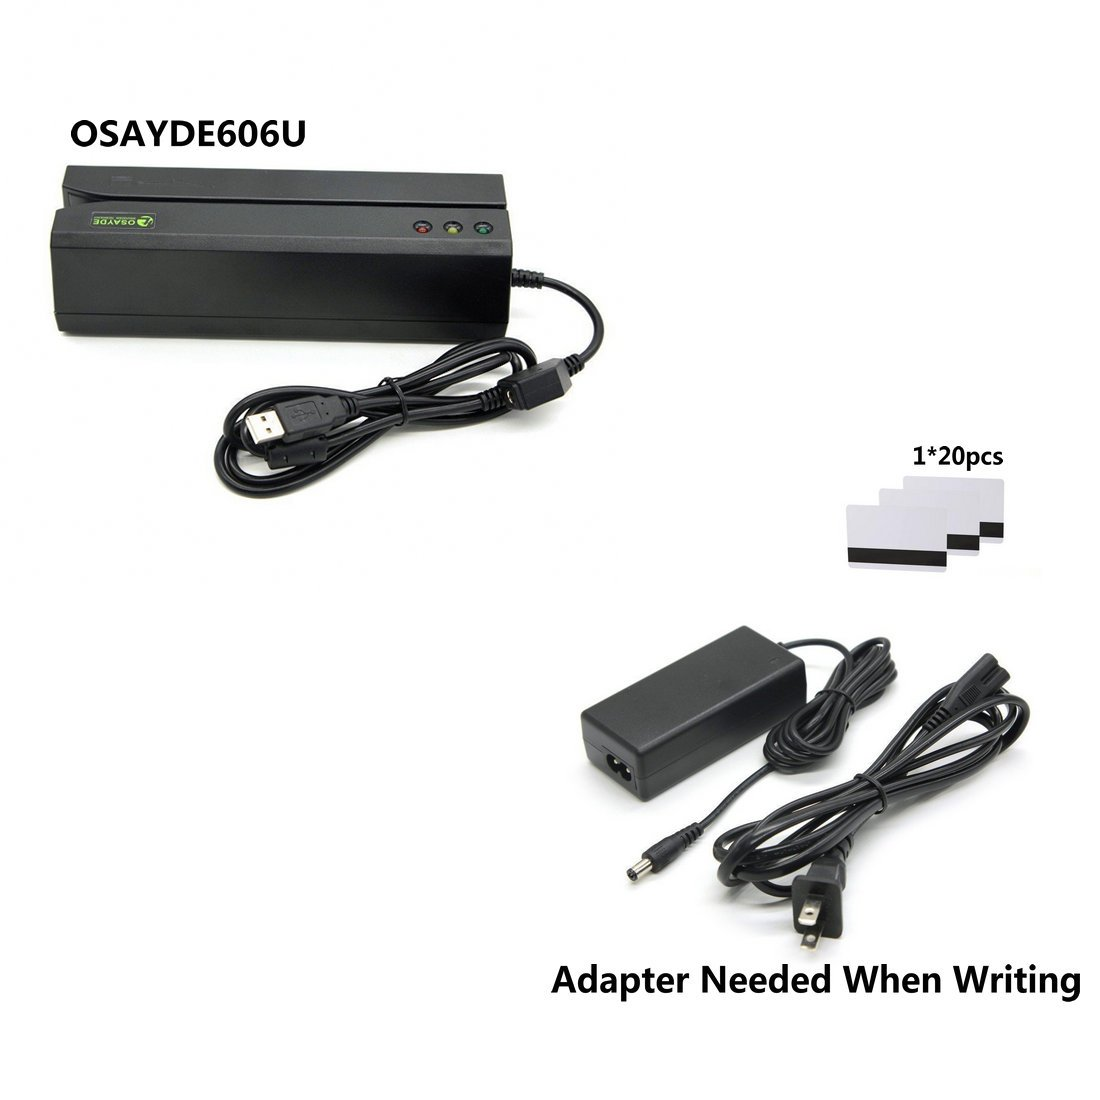 OSAYDE606U Student ID Club ID Membership Card Reader Writer Data Collector MSR606U No Driver Installed Swipe Reader 3 tracks Hi-co Magnetic Stripe Card Reader/Writer Encoder Swipe Credit with 20 Blank Cards Compatible for OSAYDE 606 605 206 HTT tech.